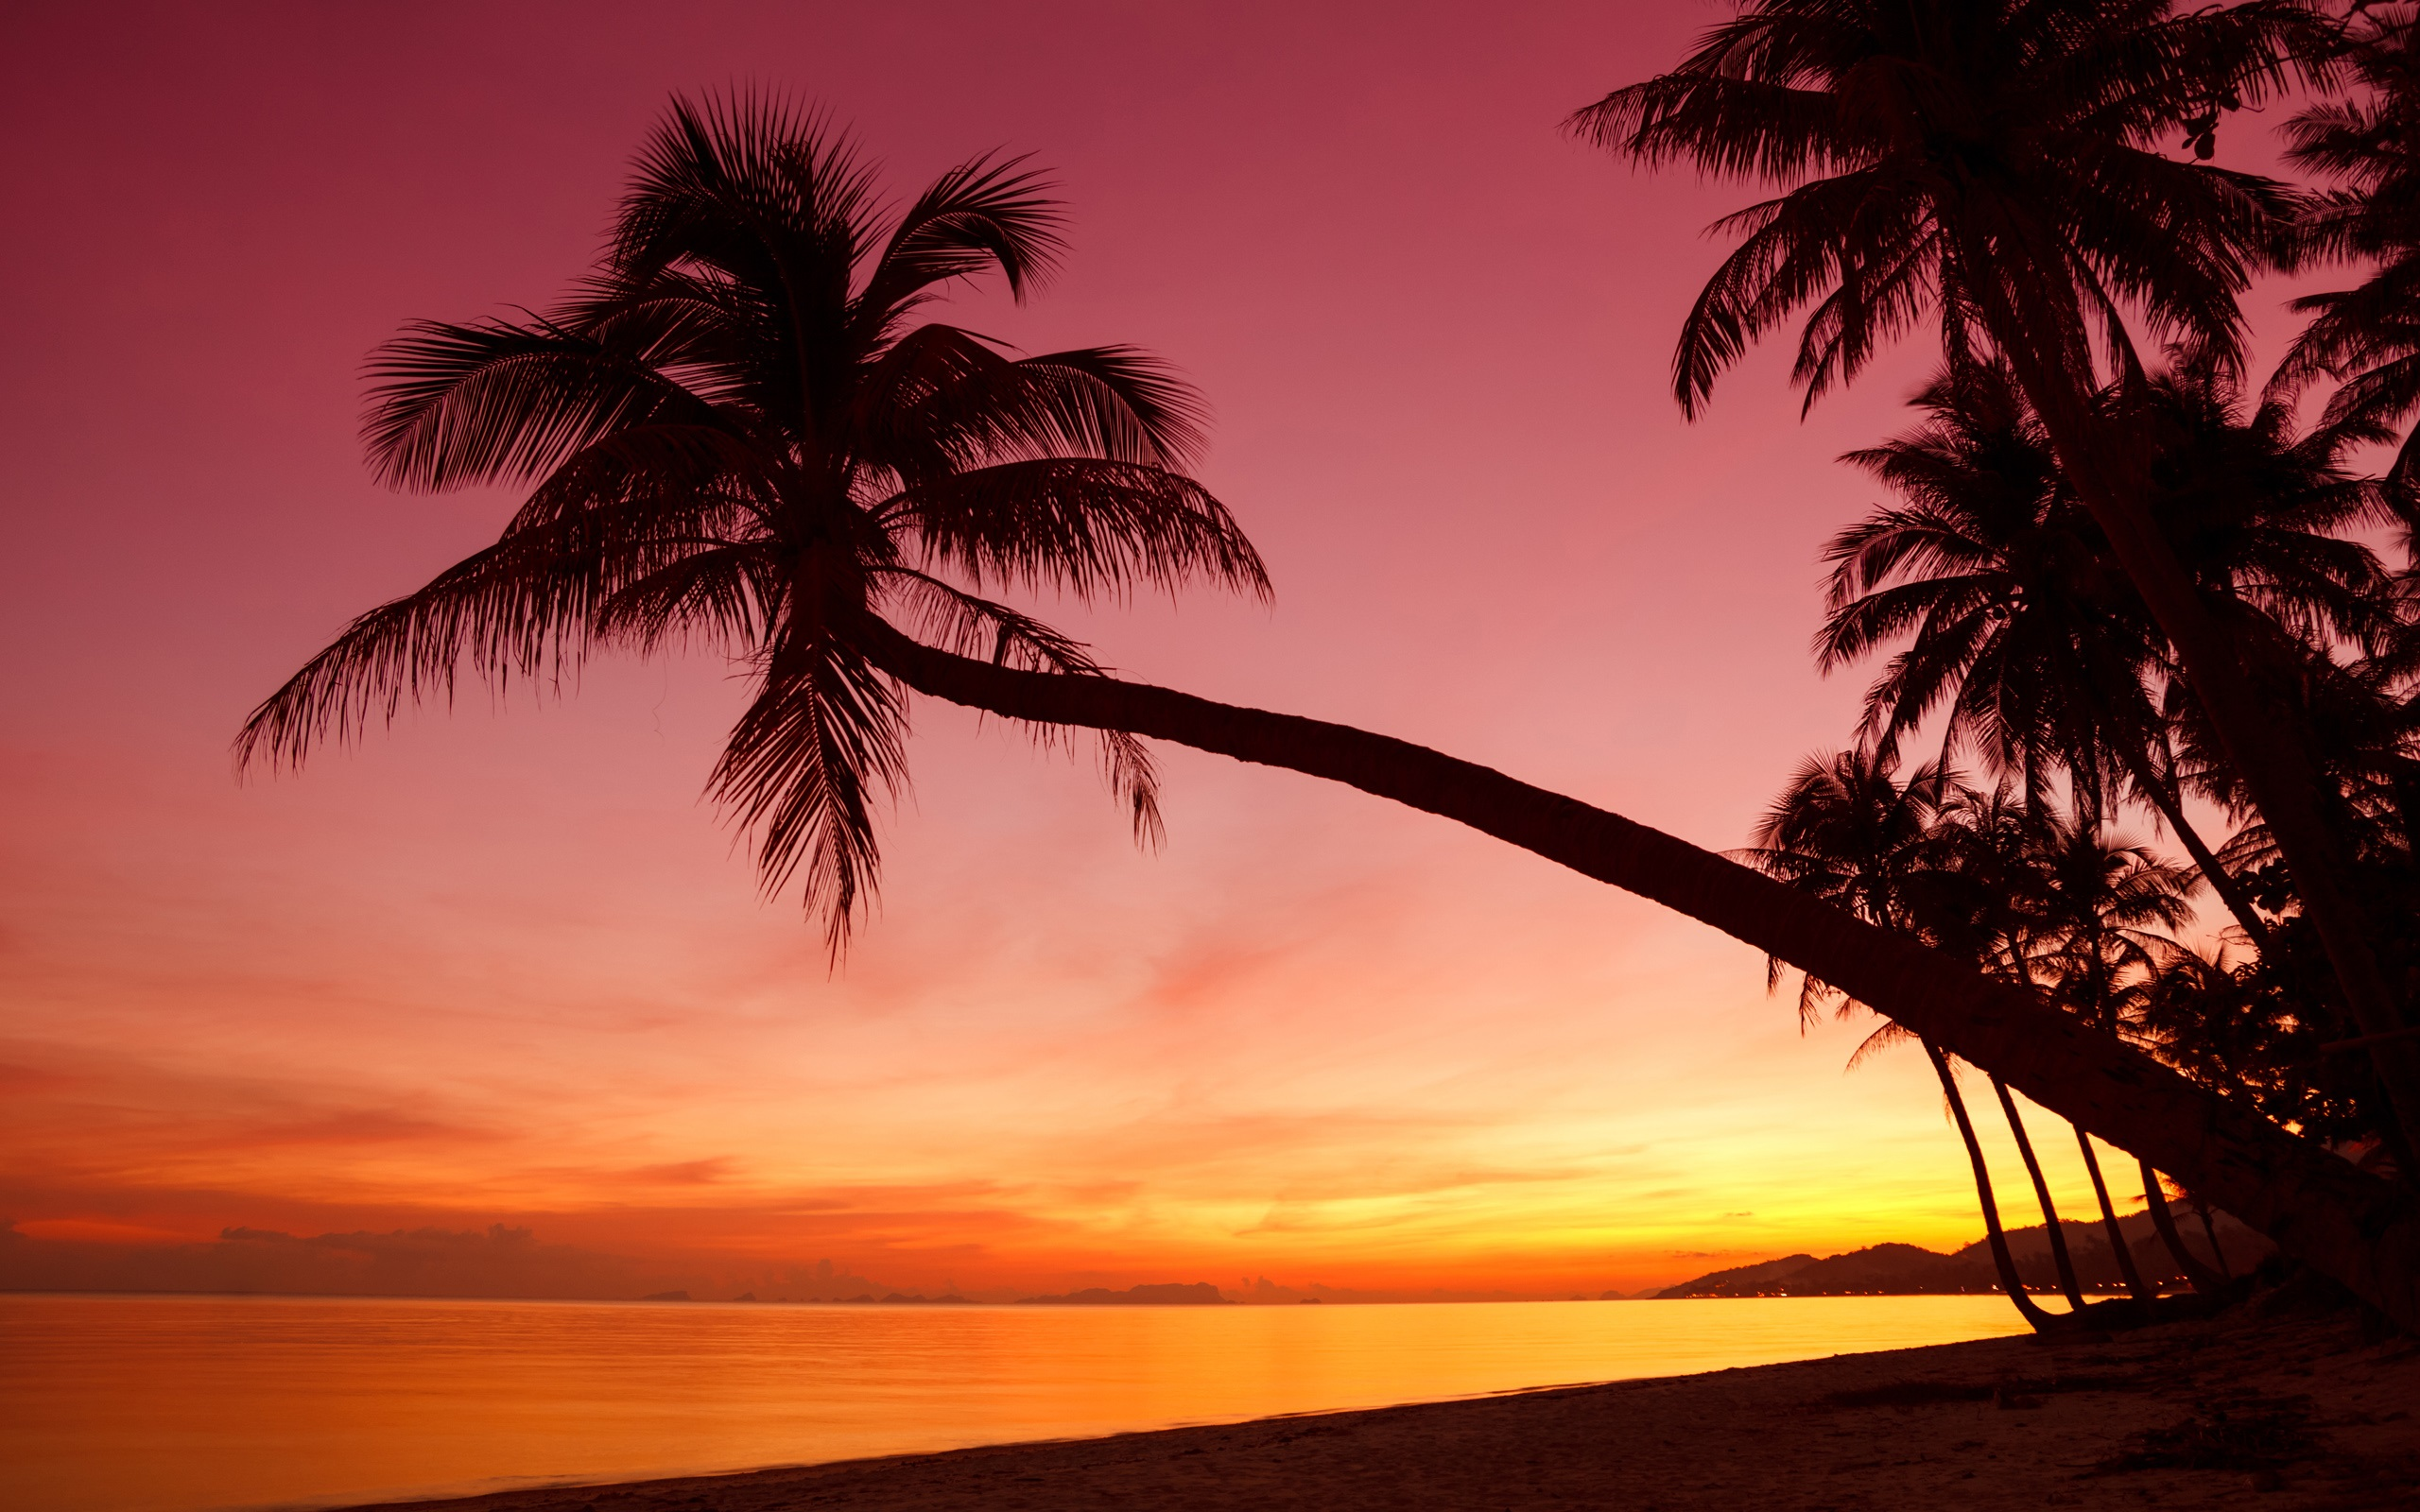 Wallpaper Tropical, Sunset, Palm Trees, Silhouette, - Scene Silhouette Palm Tree - HD Wallpaper